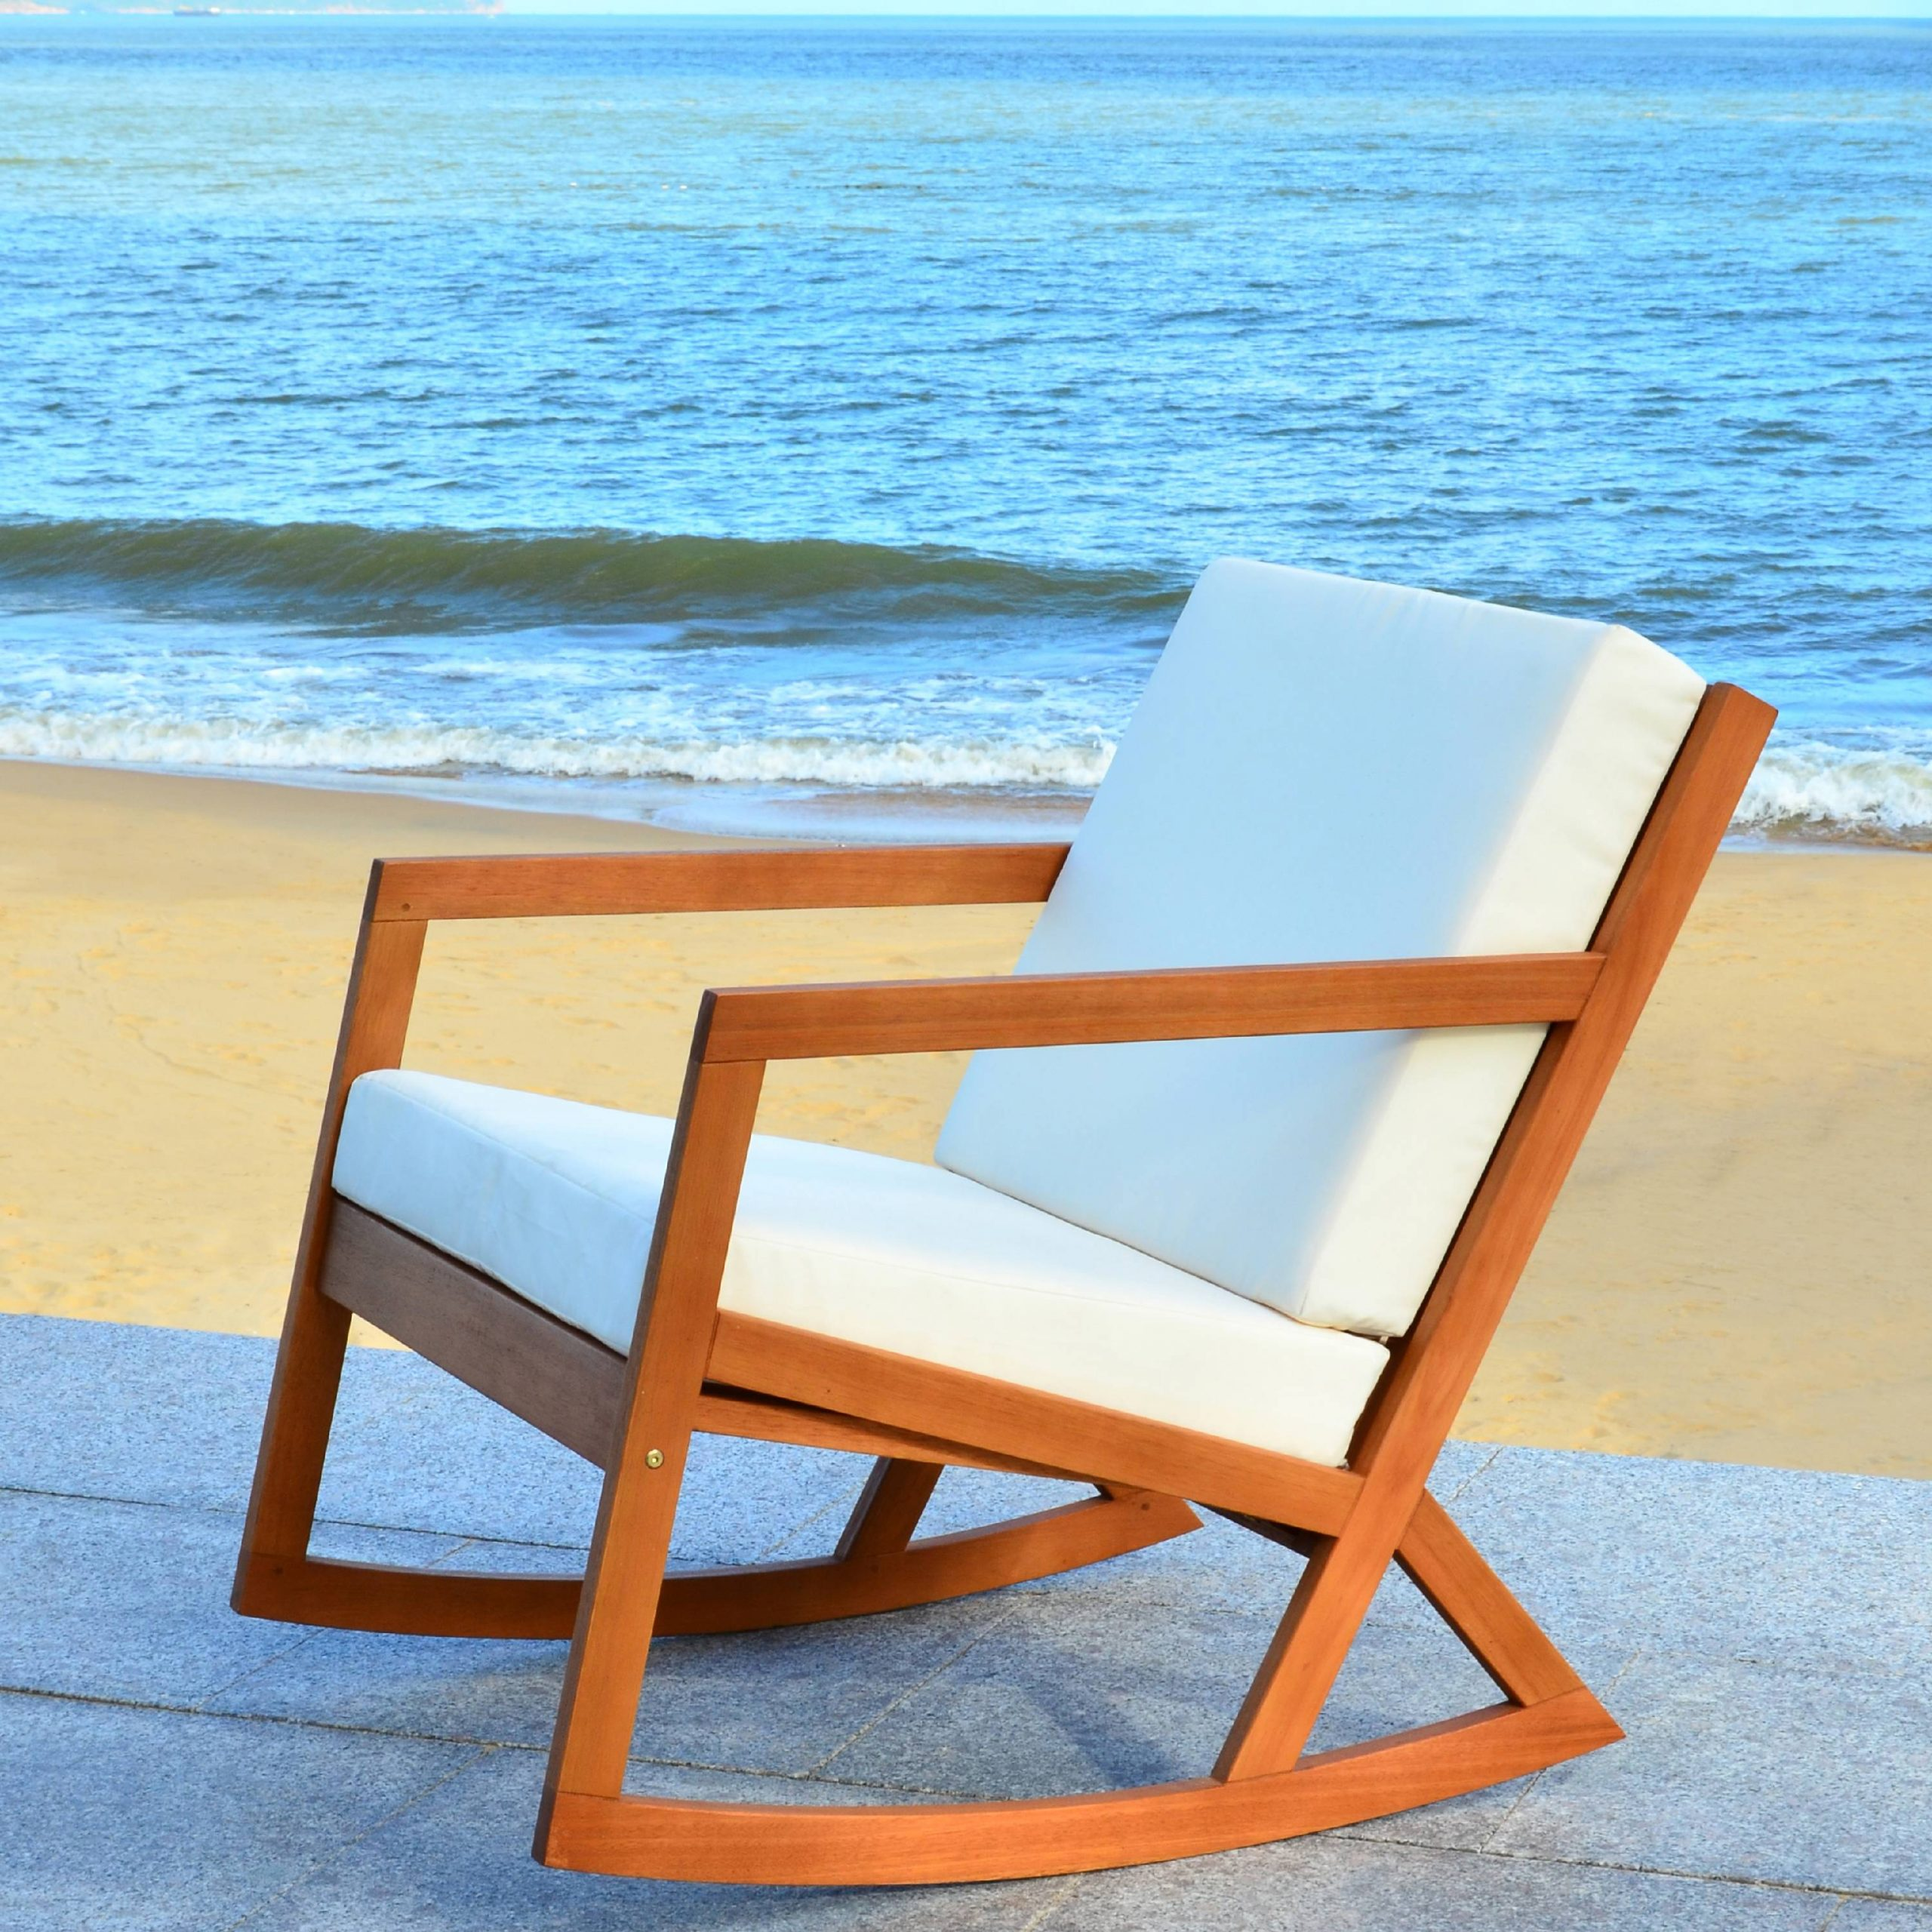 Safavieh Vernon Indoor/Outdoor Modern Rocking Chair With In Rocking Sofa Chairs (View 1 of 15)